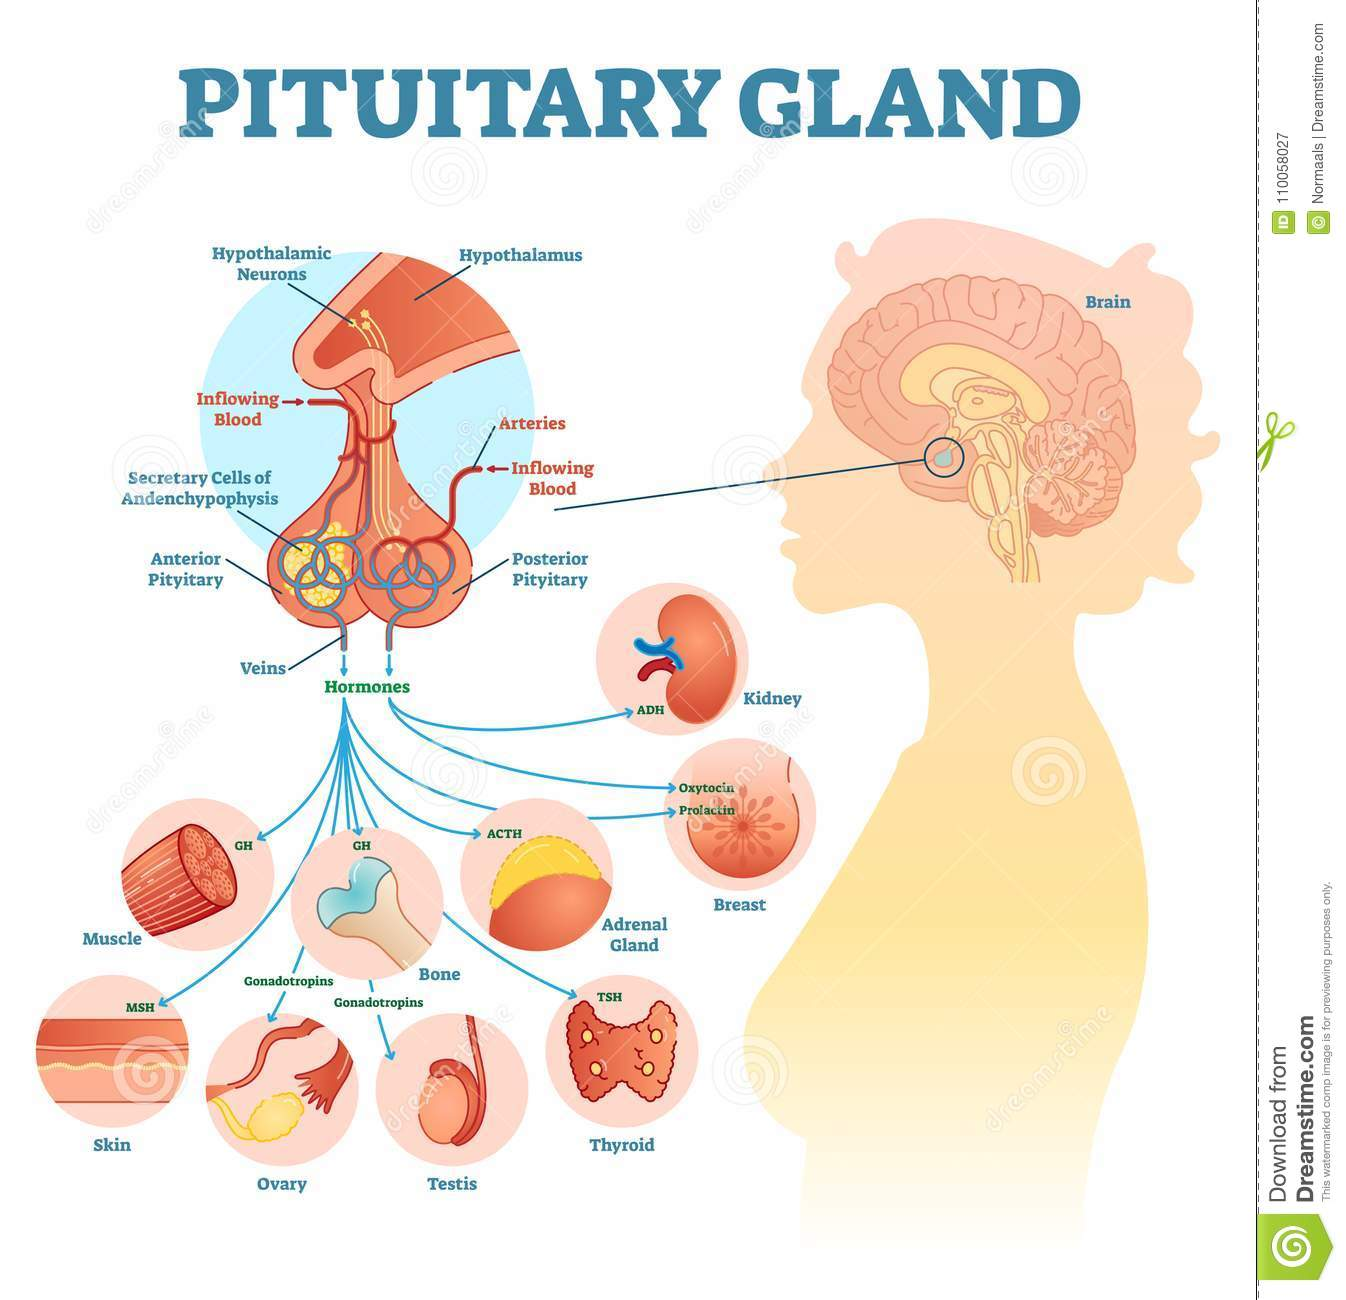 hight resolution of pituitary gland anatomical vector illustration diagram educational medical scheme